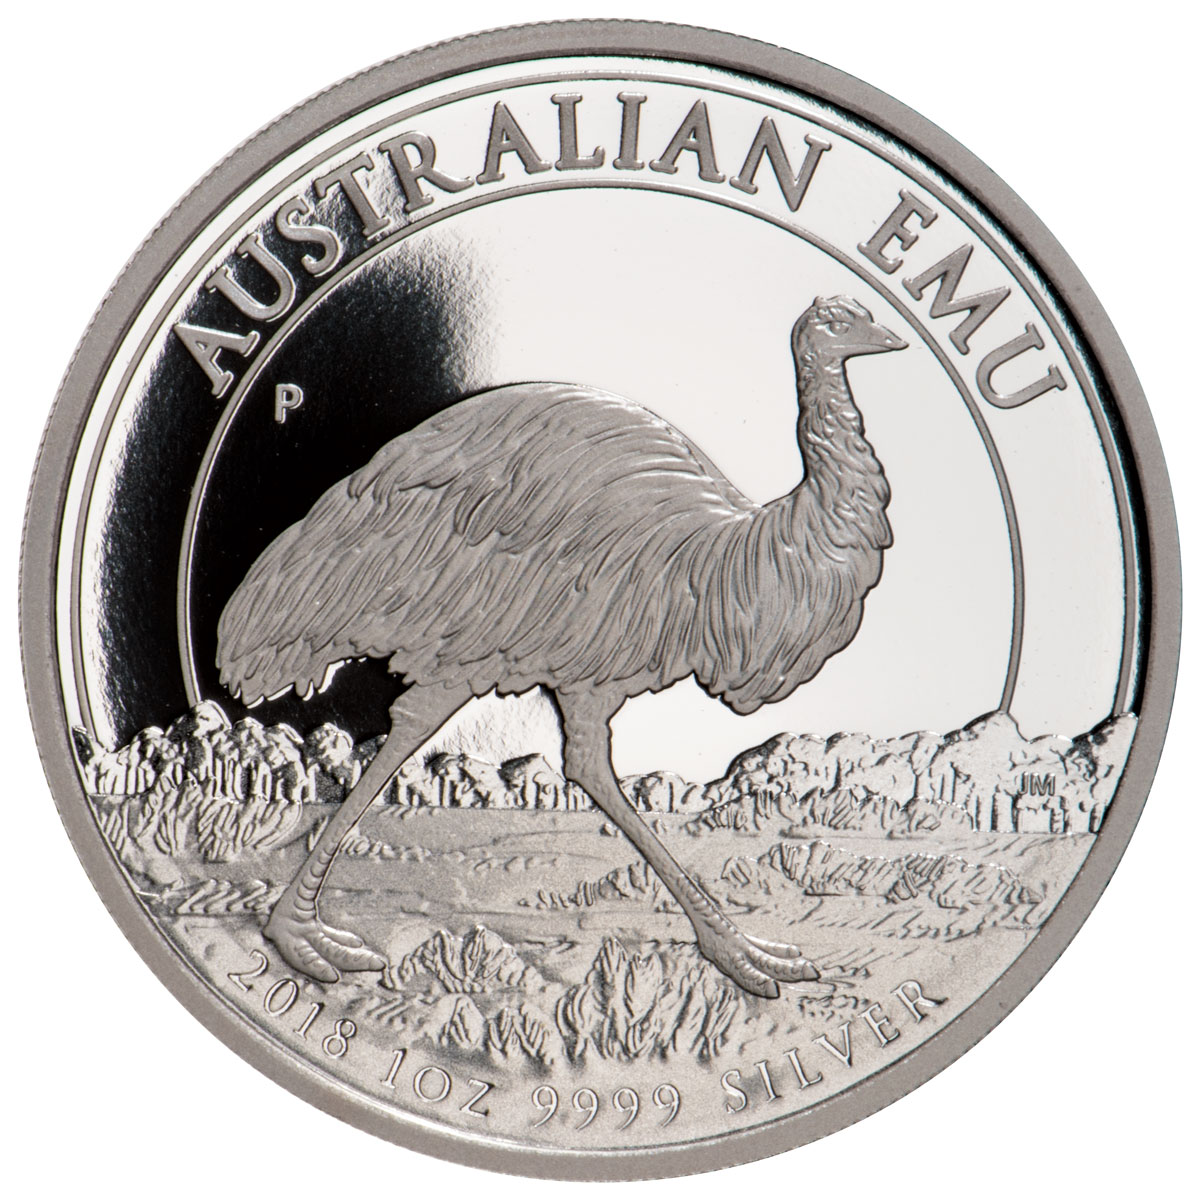 2018-P Australia 1 oz Silver Emu Proof $1 Coin GEM Proof